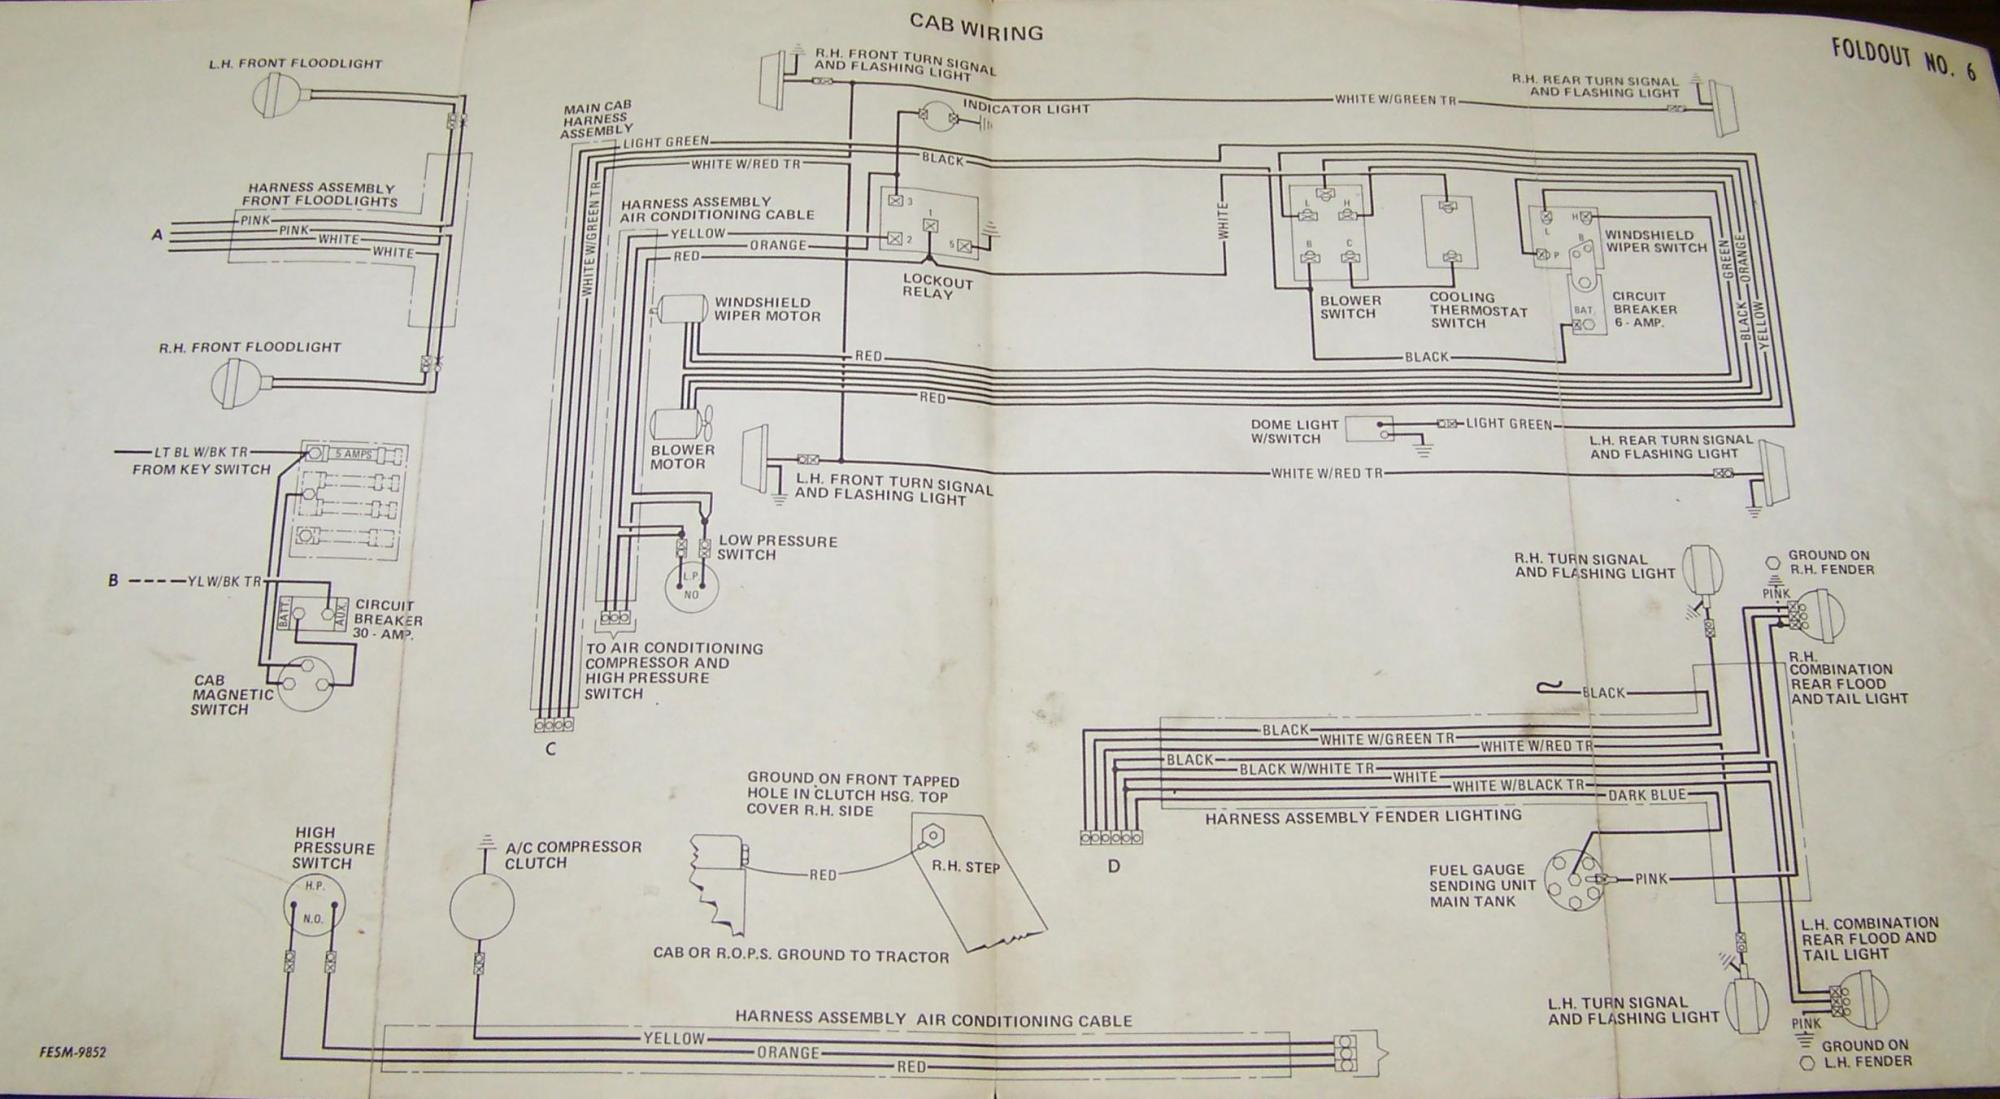 hight resolution of wiring diagram 1486 international tractor 1206 international tractor wiring wiring diagram 966 international tractor 806 international